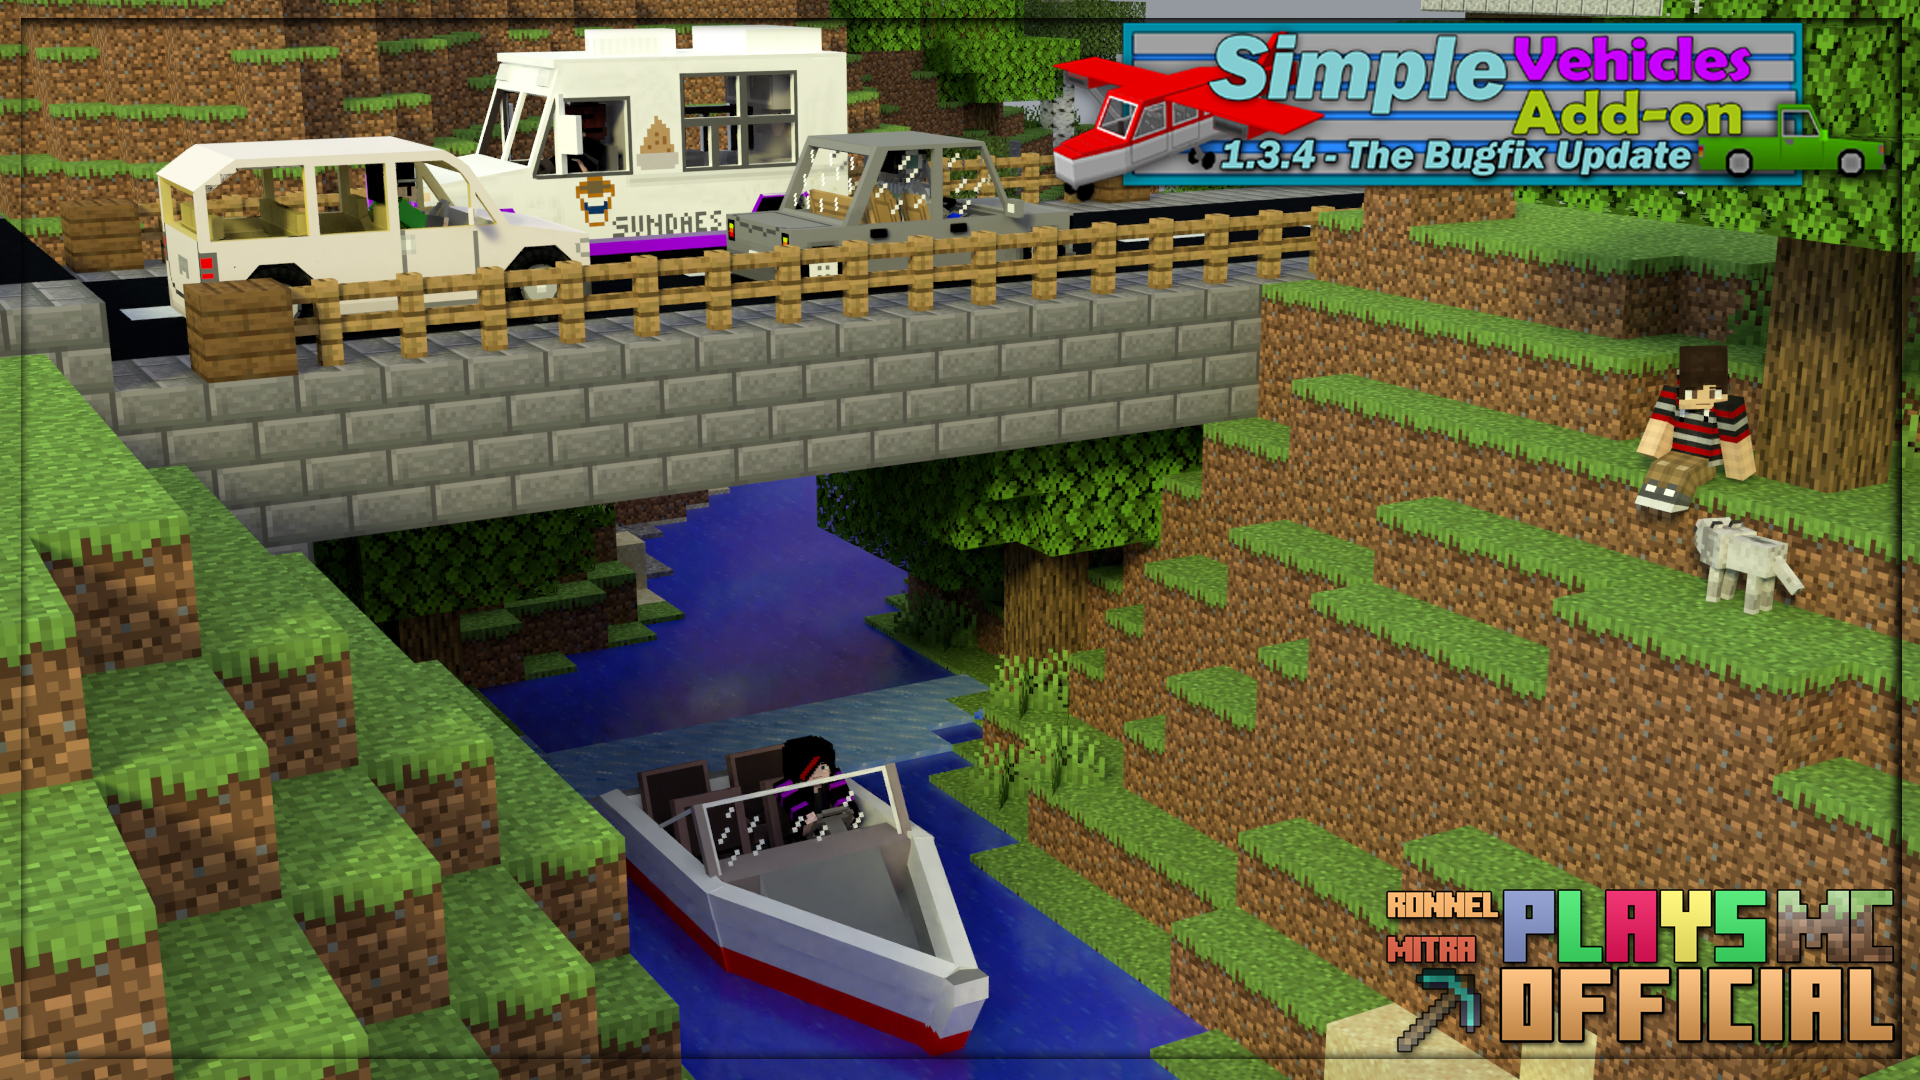 Simple Vehicles Add On Version 1 3 4 For Minecraft Bedrock 1 16 1 16 100 Linkvertise